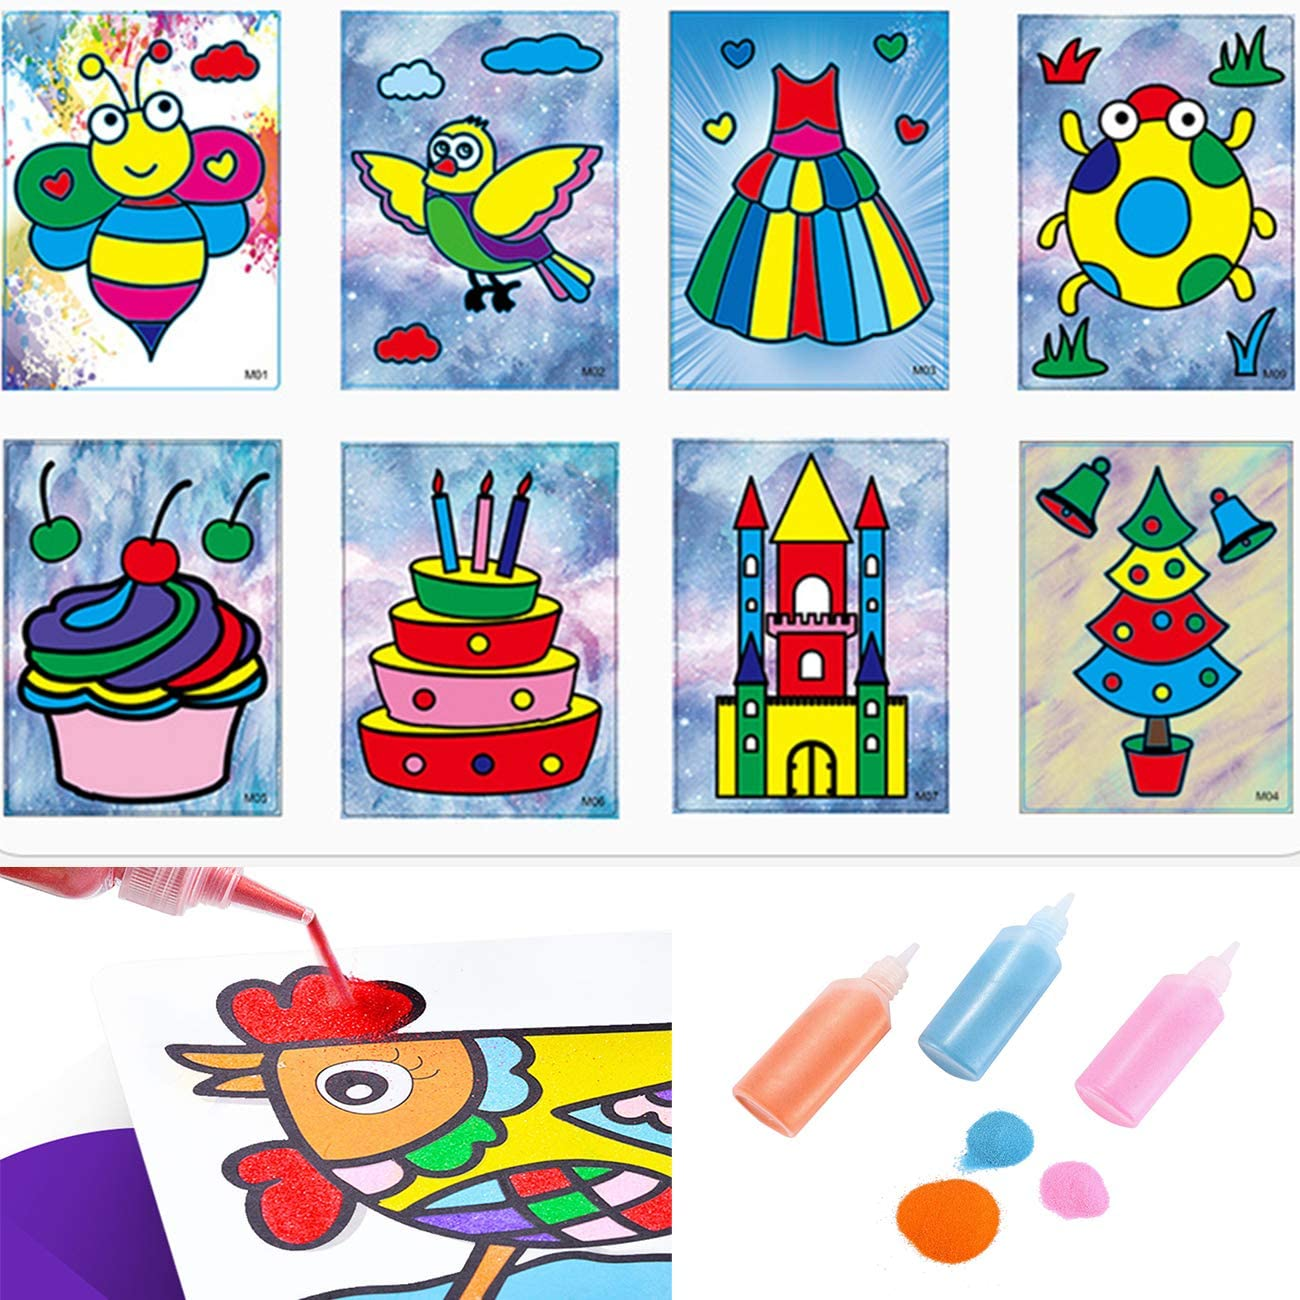 Fottaqqan 12 Pack Art Sand Kit Scenic Sand,DIY Arts and Crafts for Kids,Colored Terrarium Sand for Wedding Decor,Painting,Children